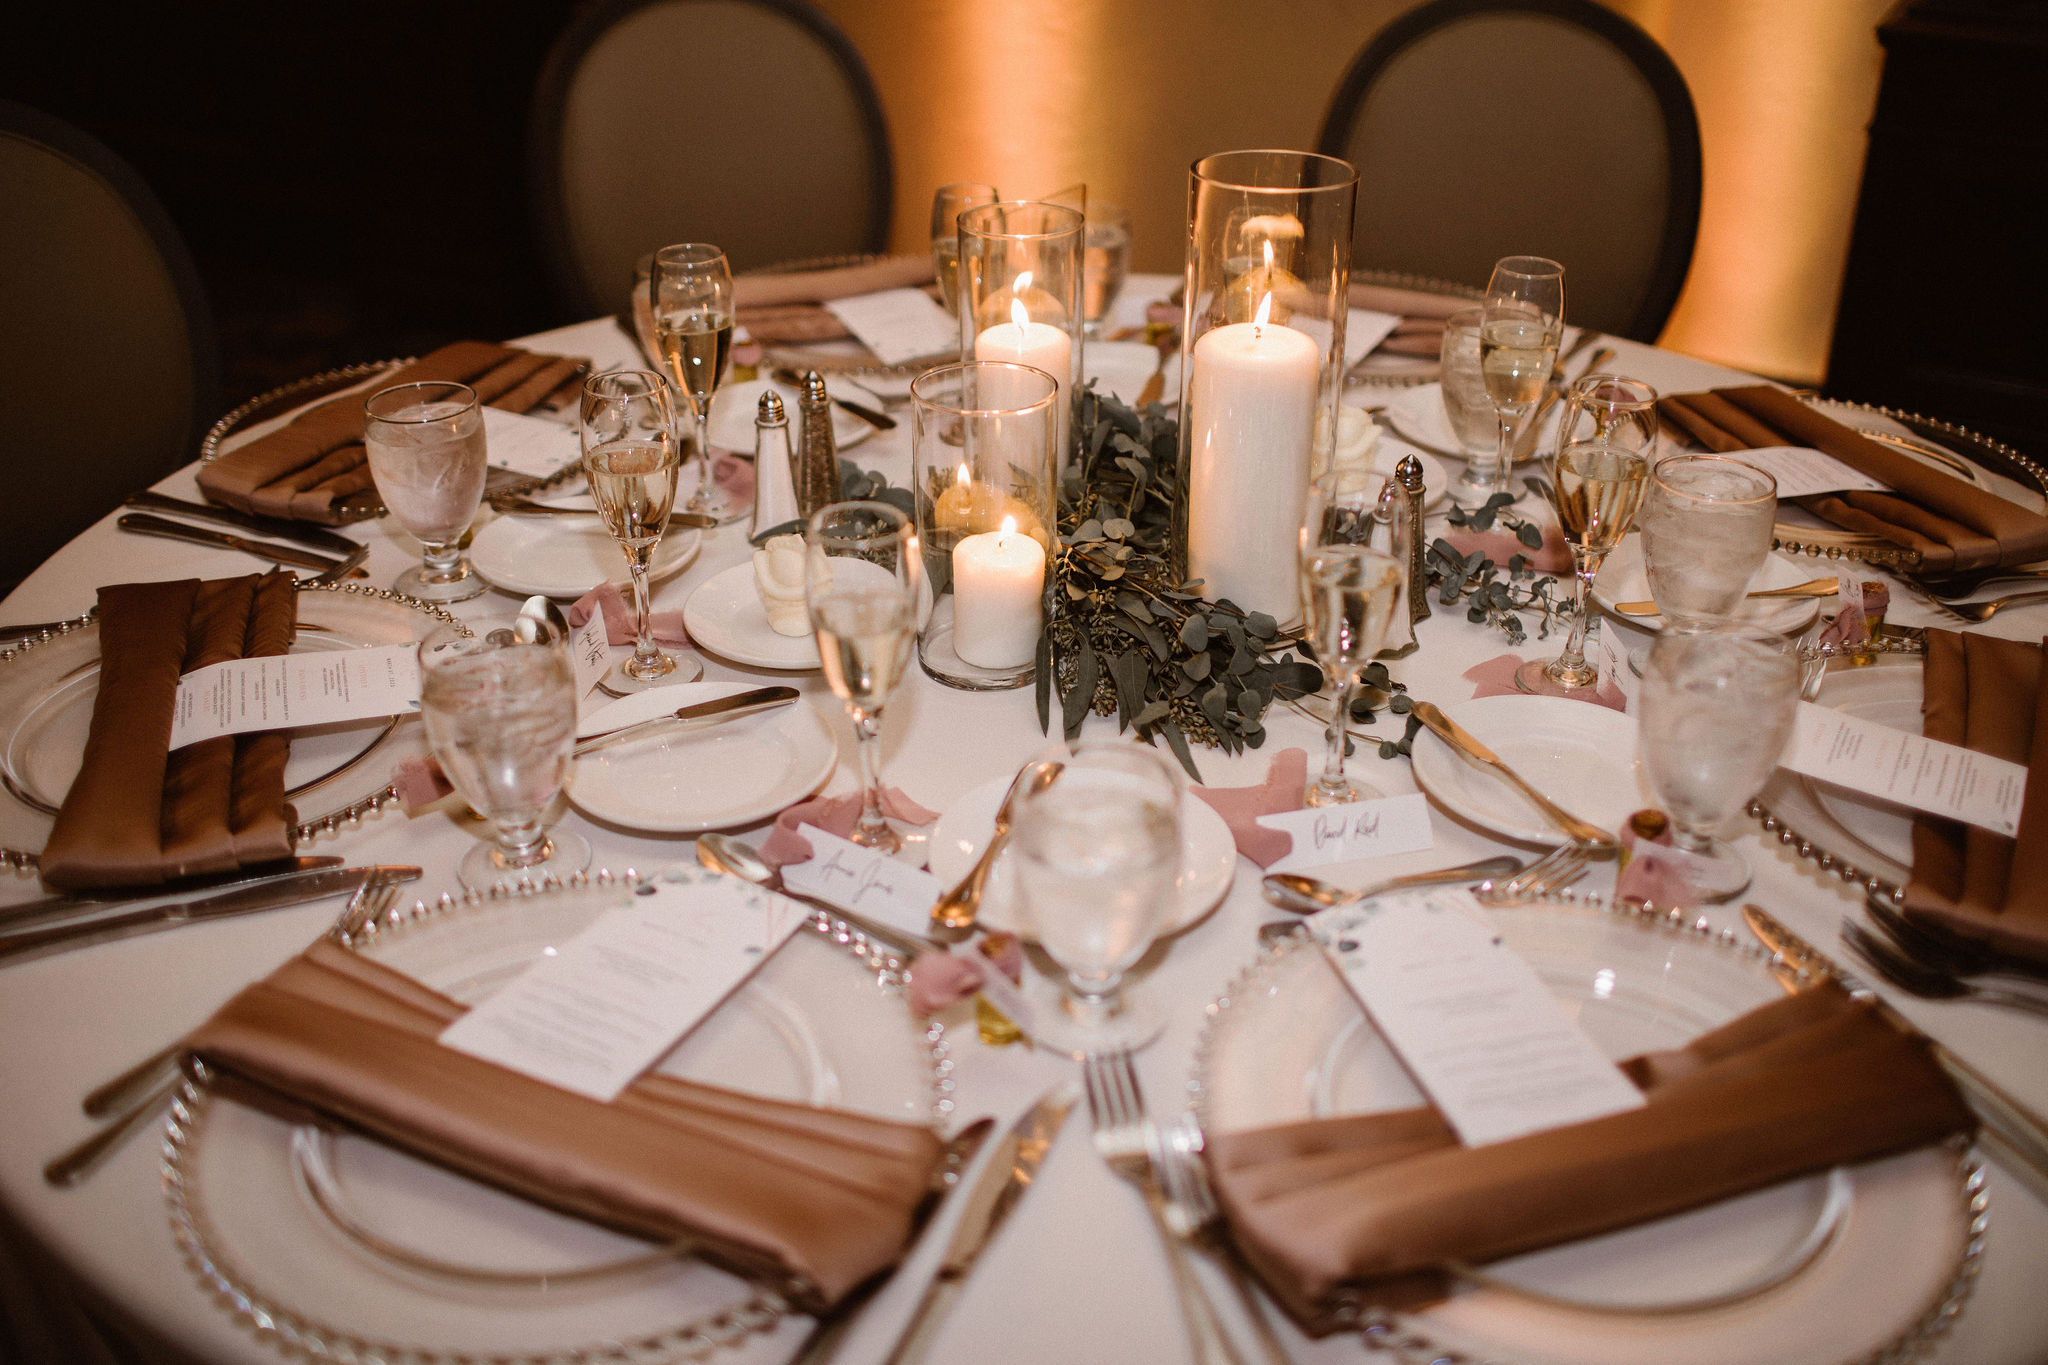 wedding table setting with glass chargers and mauve napkins